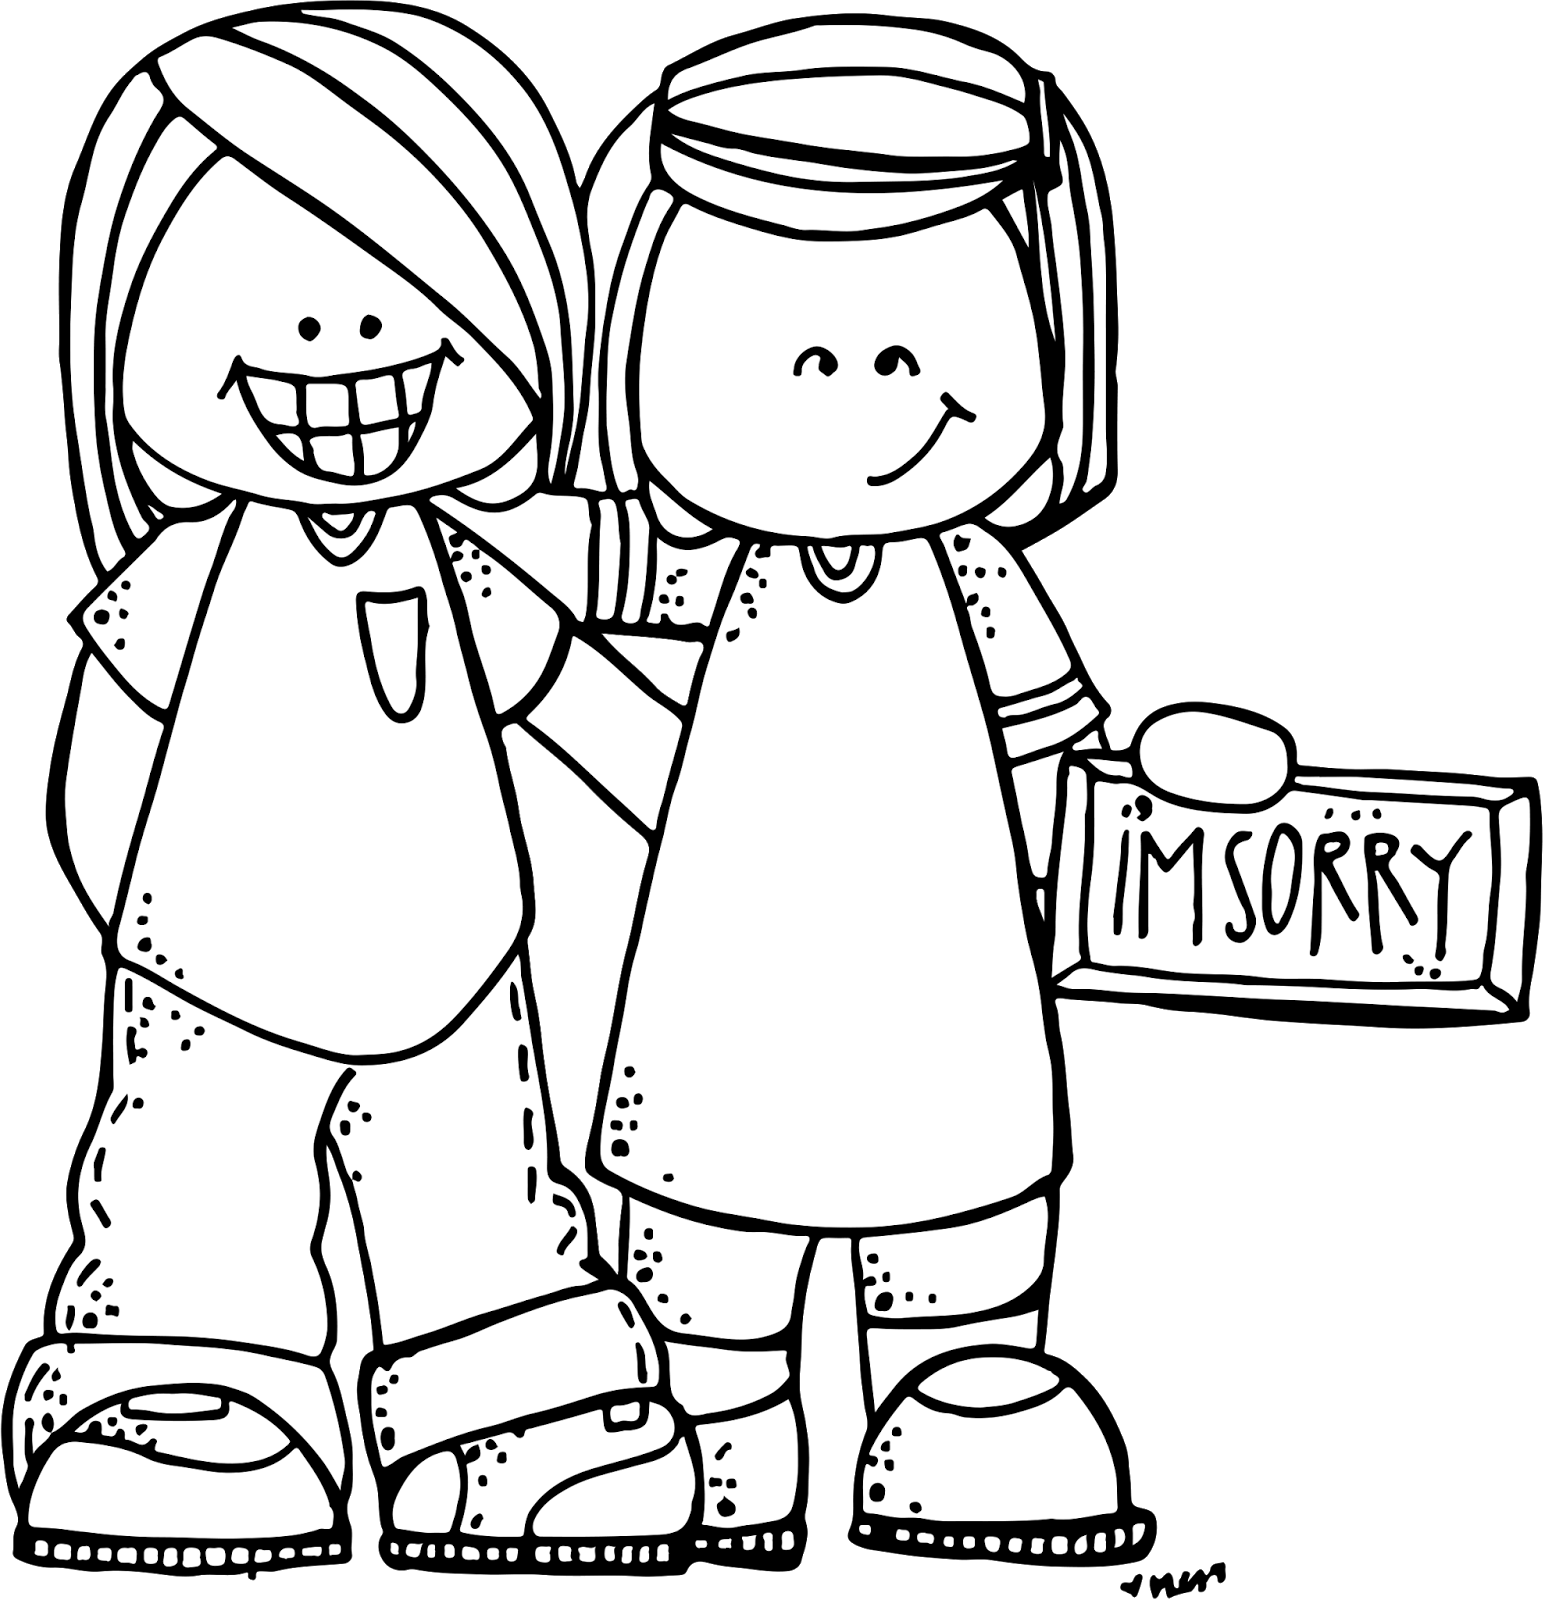 Forgiveness clipart obedience, Forgiveness obedience.